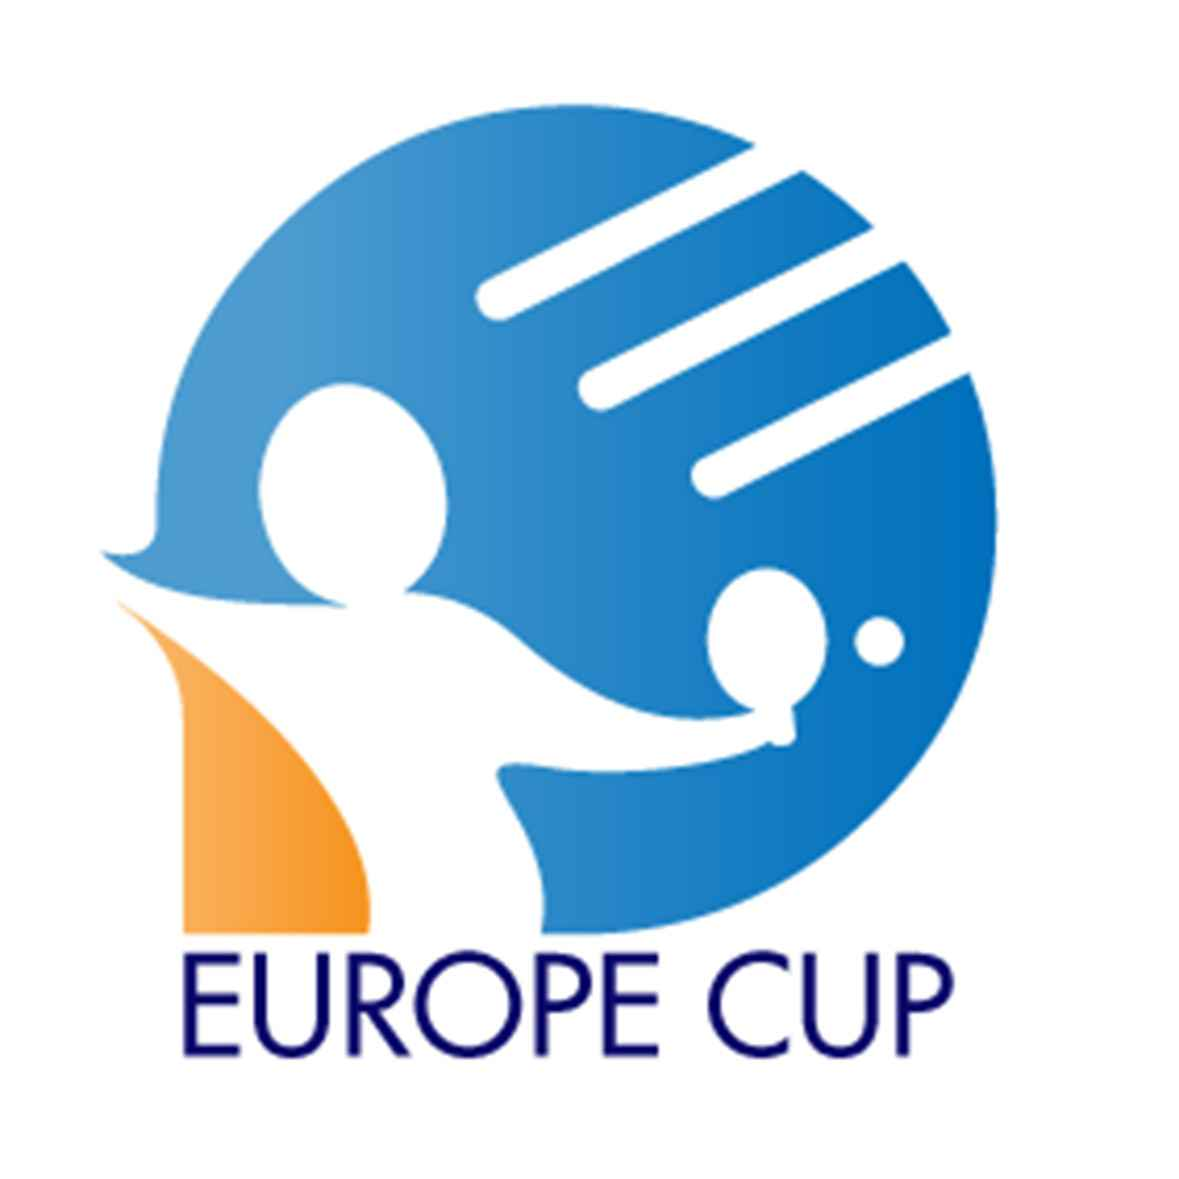 Logotipo Europe Cup